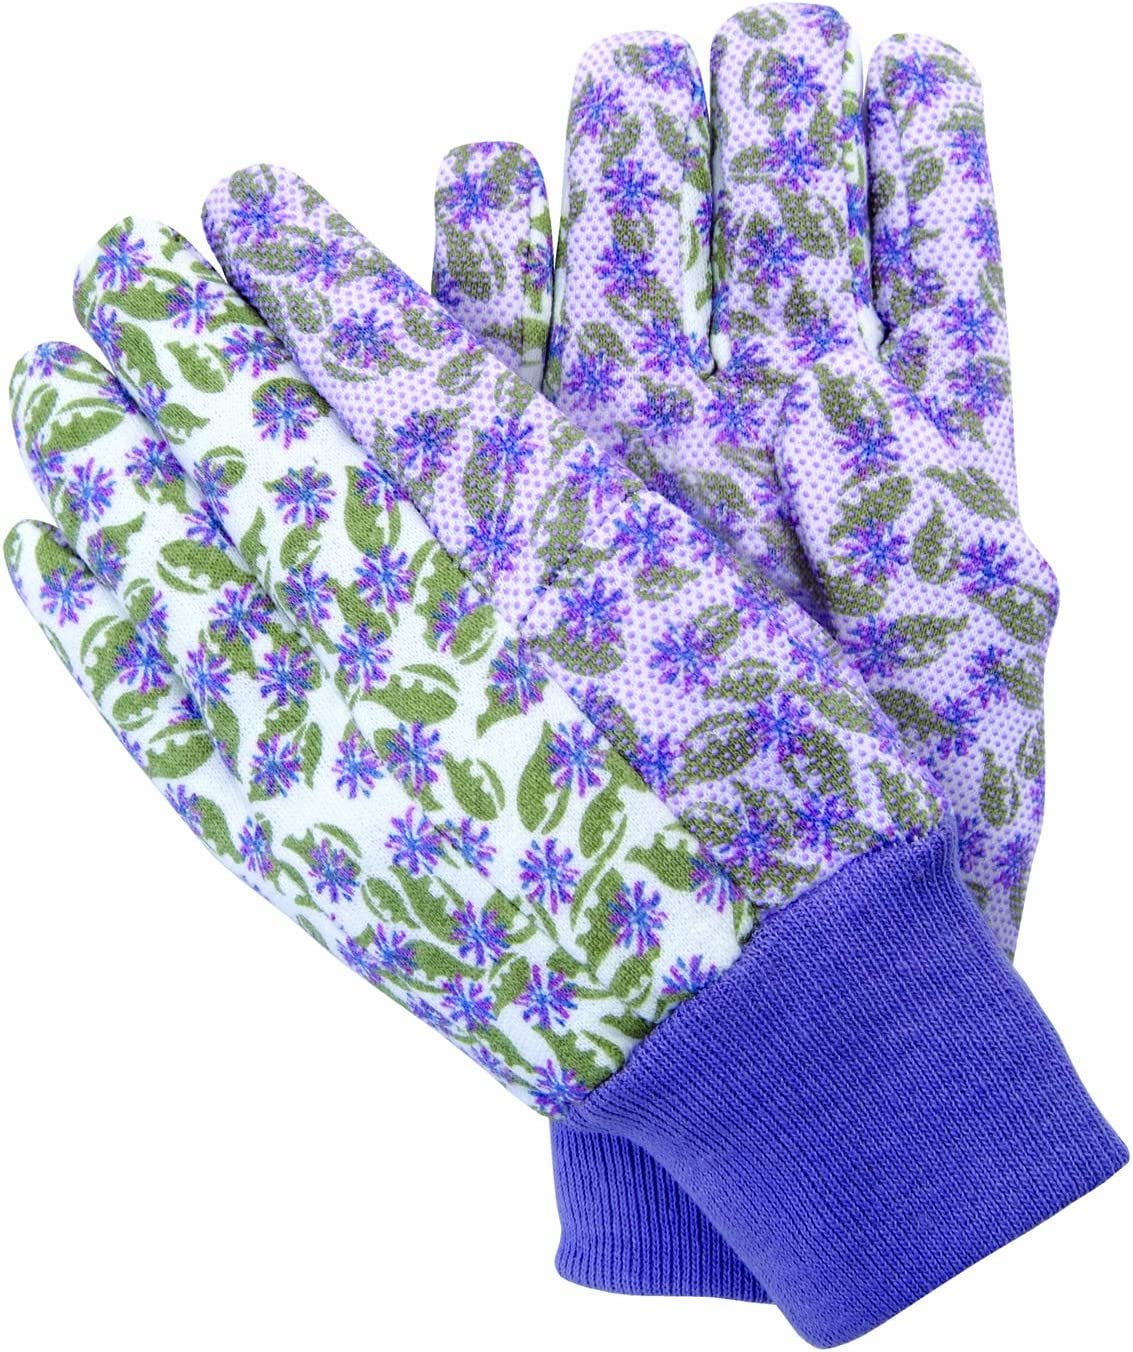 Magid Max 67% OFF BE188T Bella Floral Print Garden Dotted Mail order Glove Jersey